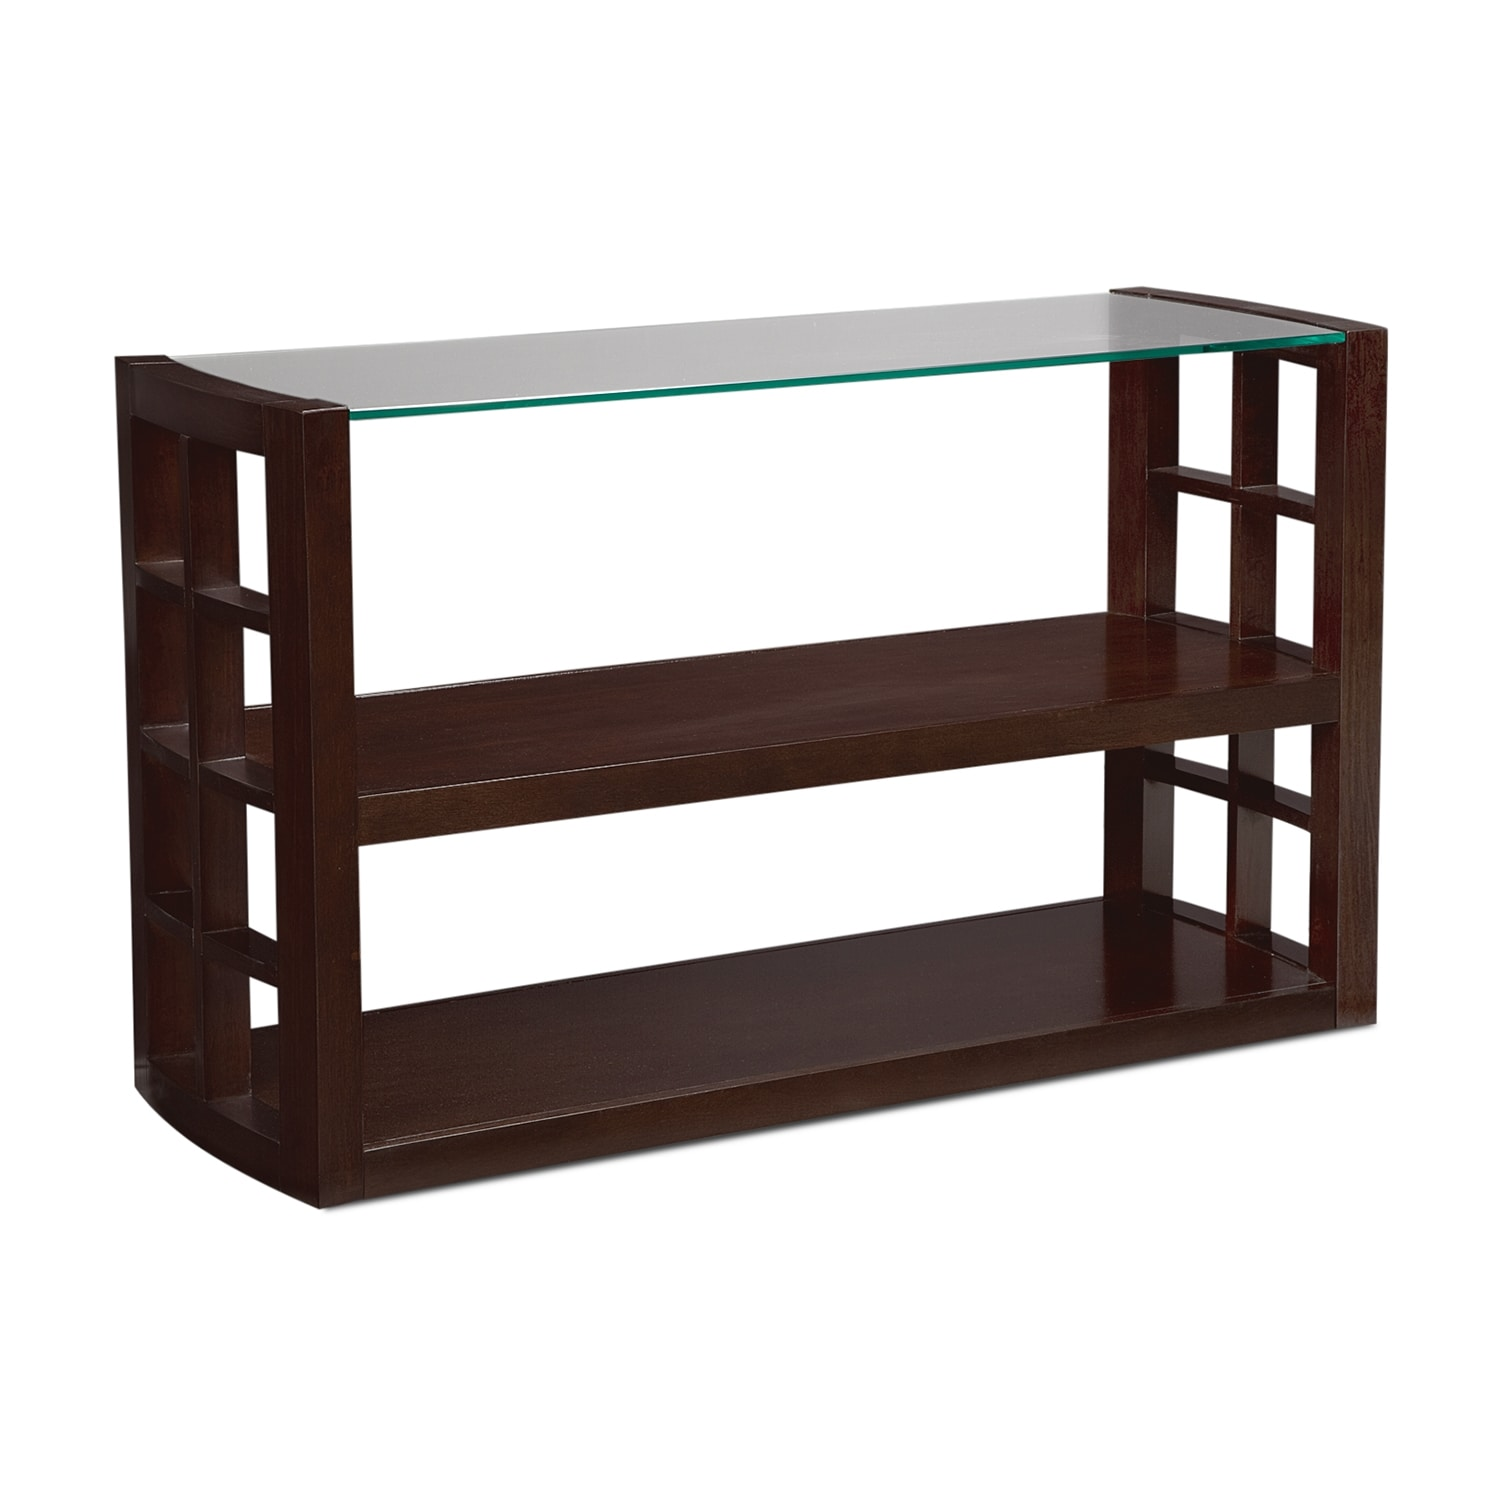 Accent and Occasional Furniture - Daytona Sofa Table - Merlot